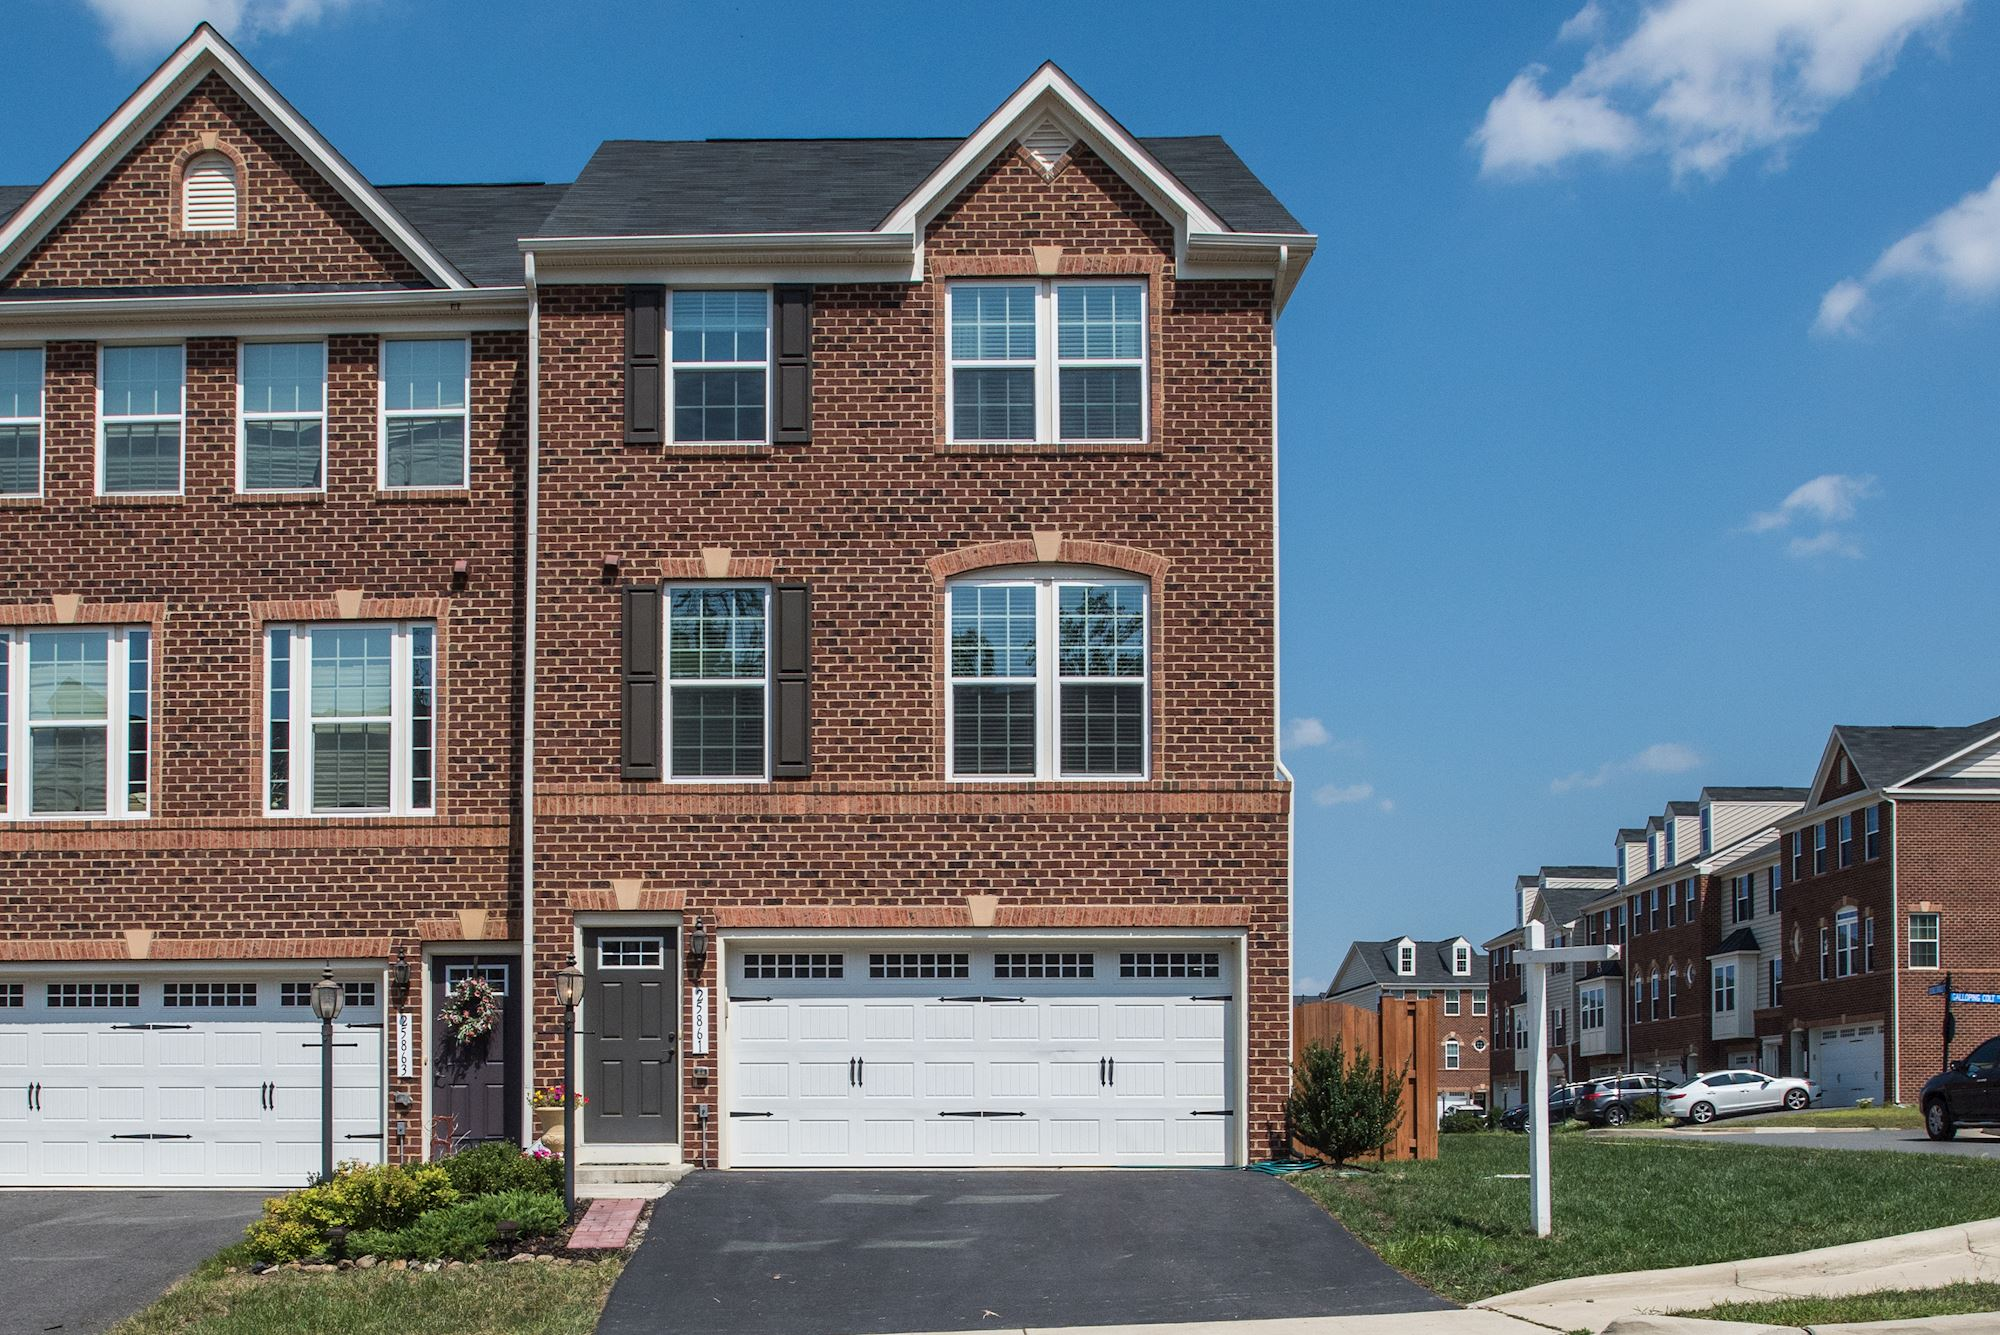 NEW LISTING: 3 BD Open & Bright End Unit in Aldie, VA